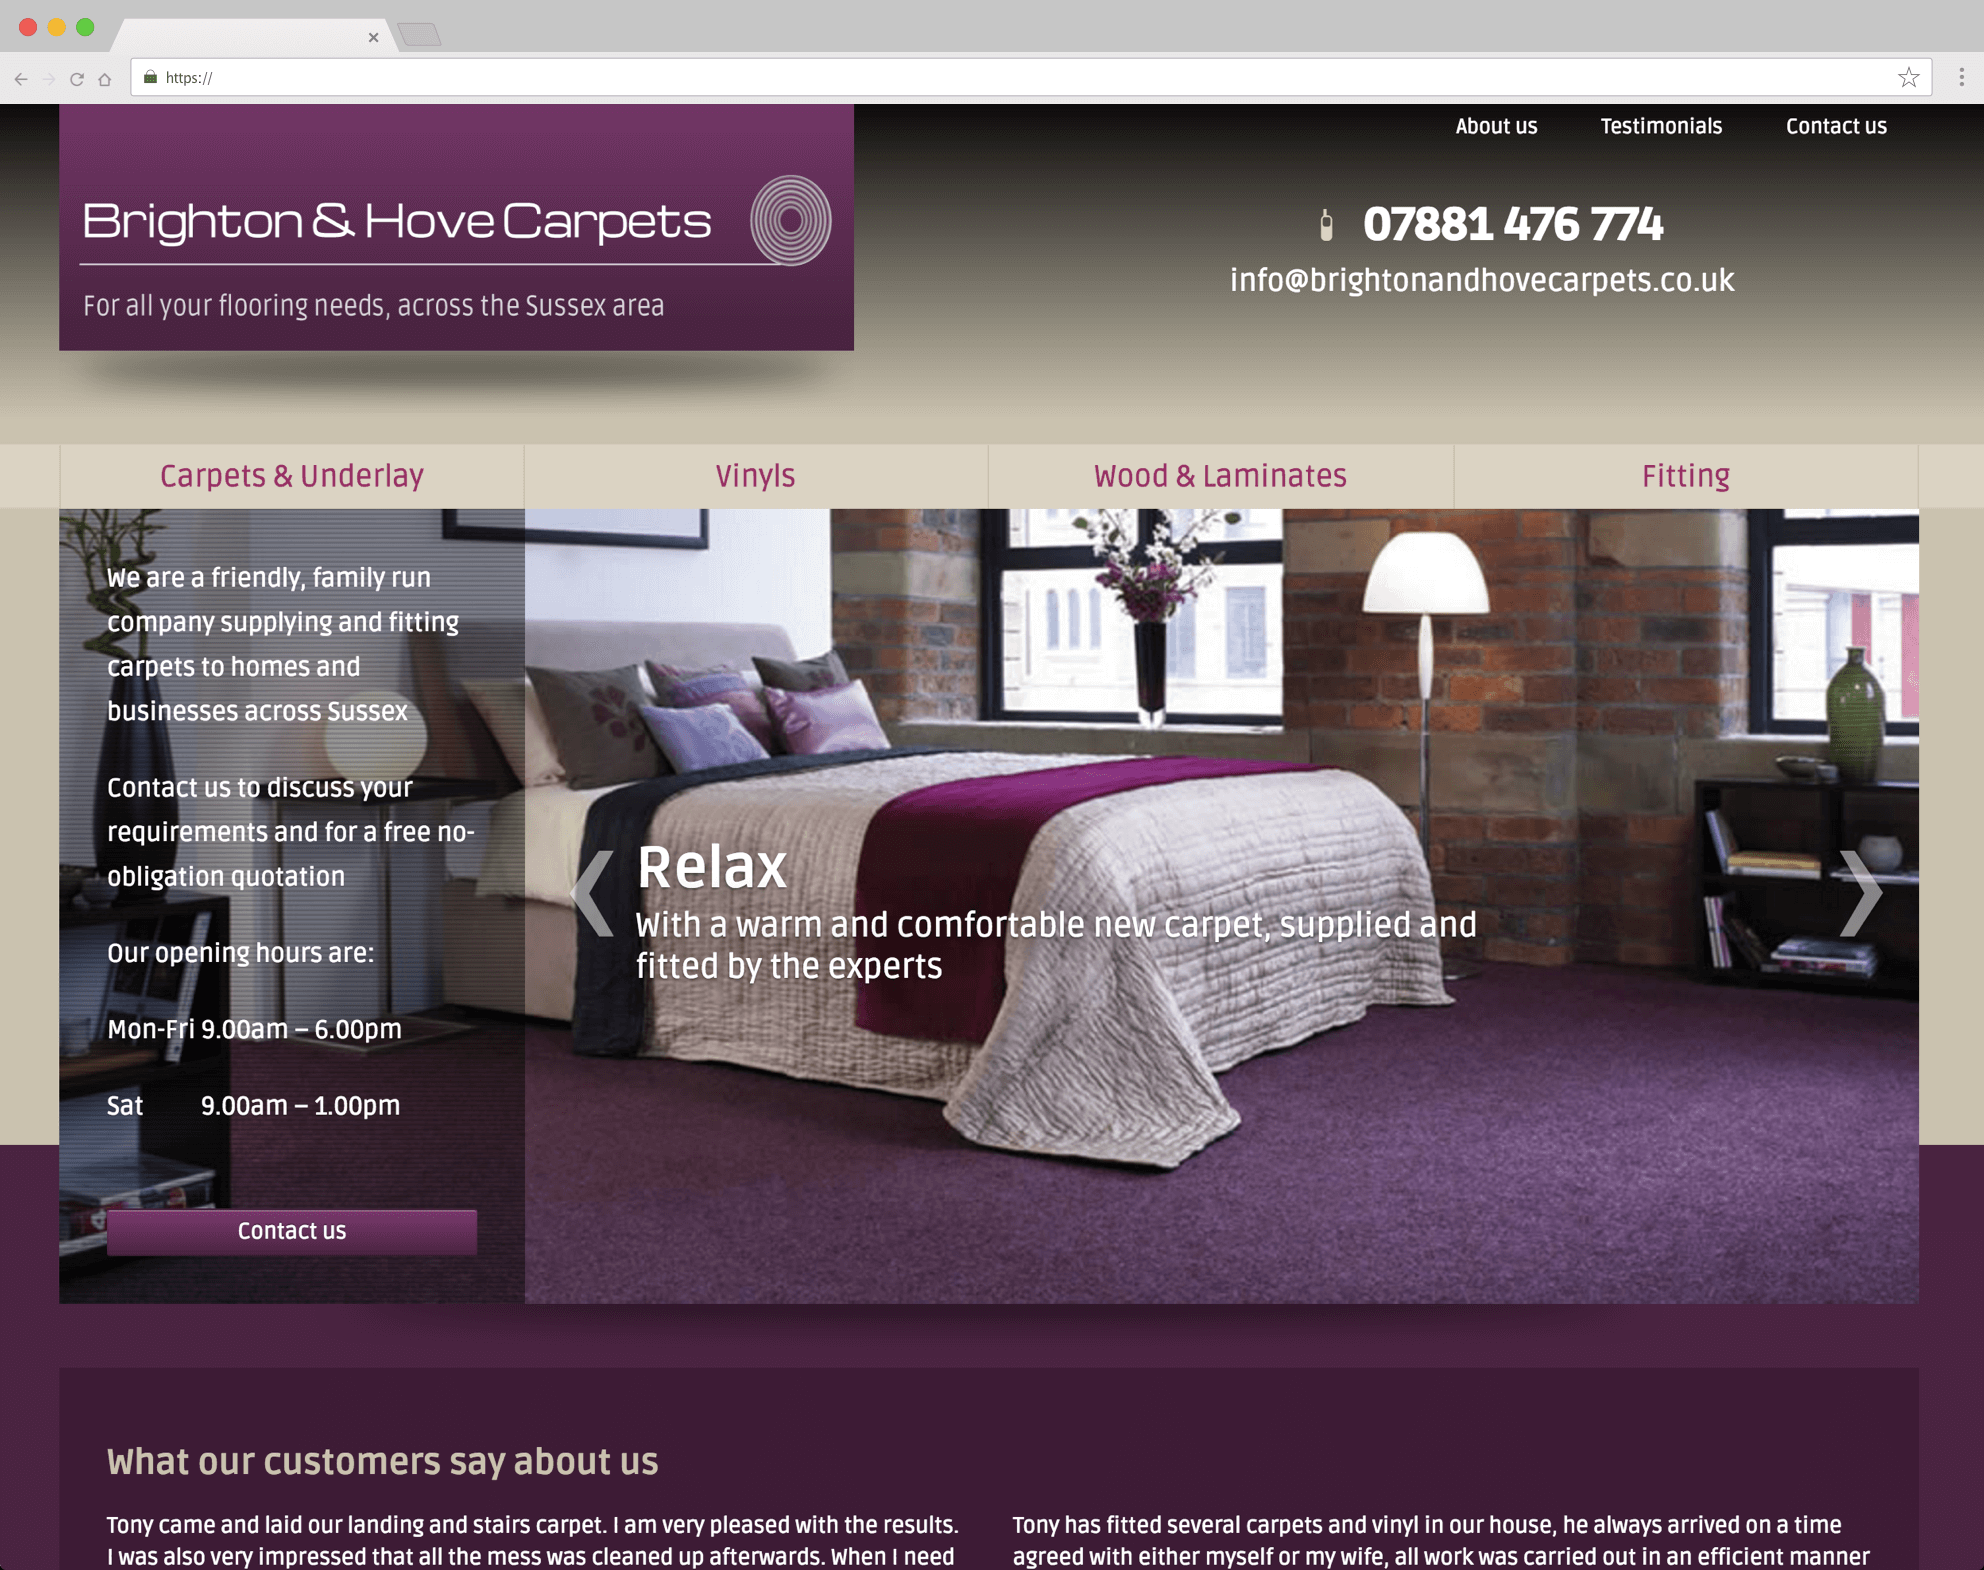 Brighton and Hove Carpets website (Website on desktop)